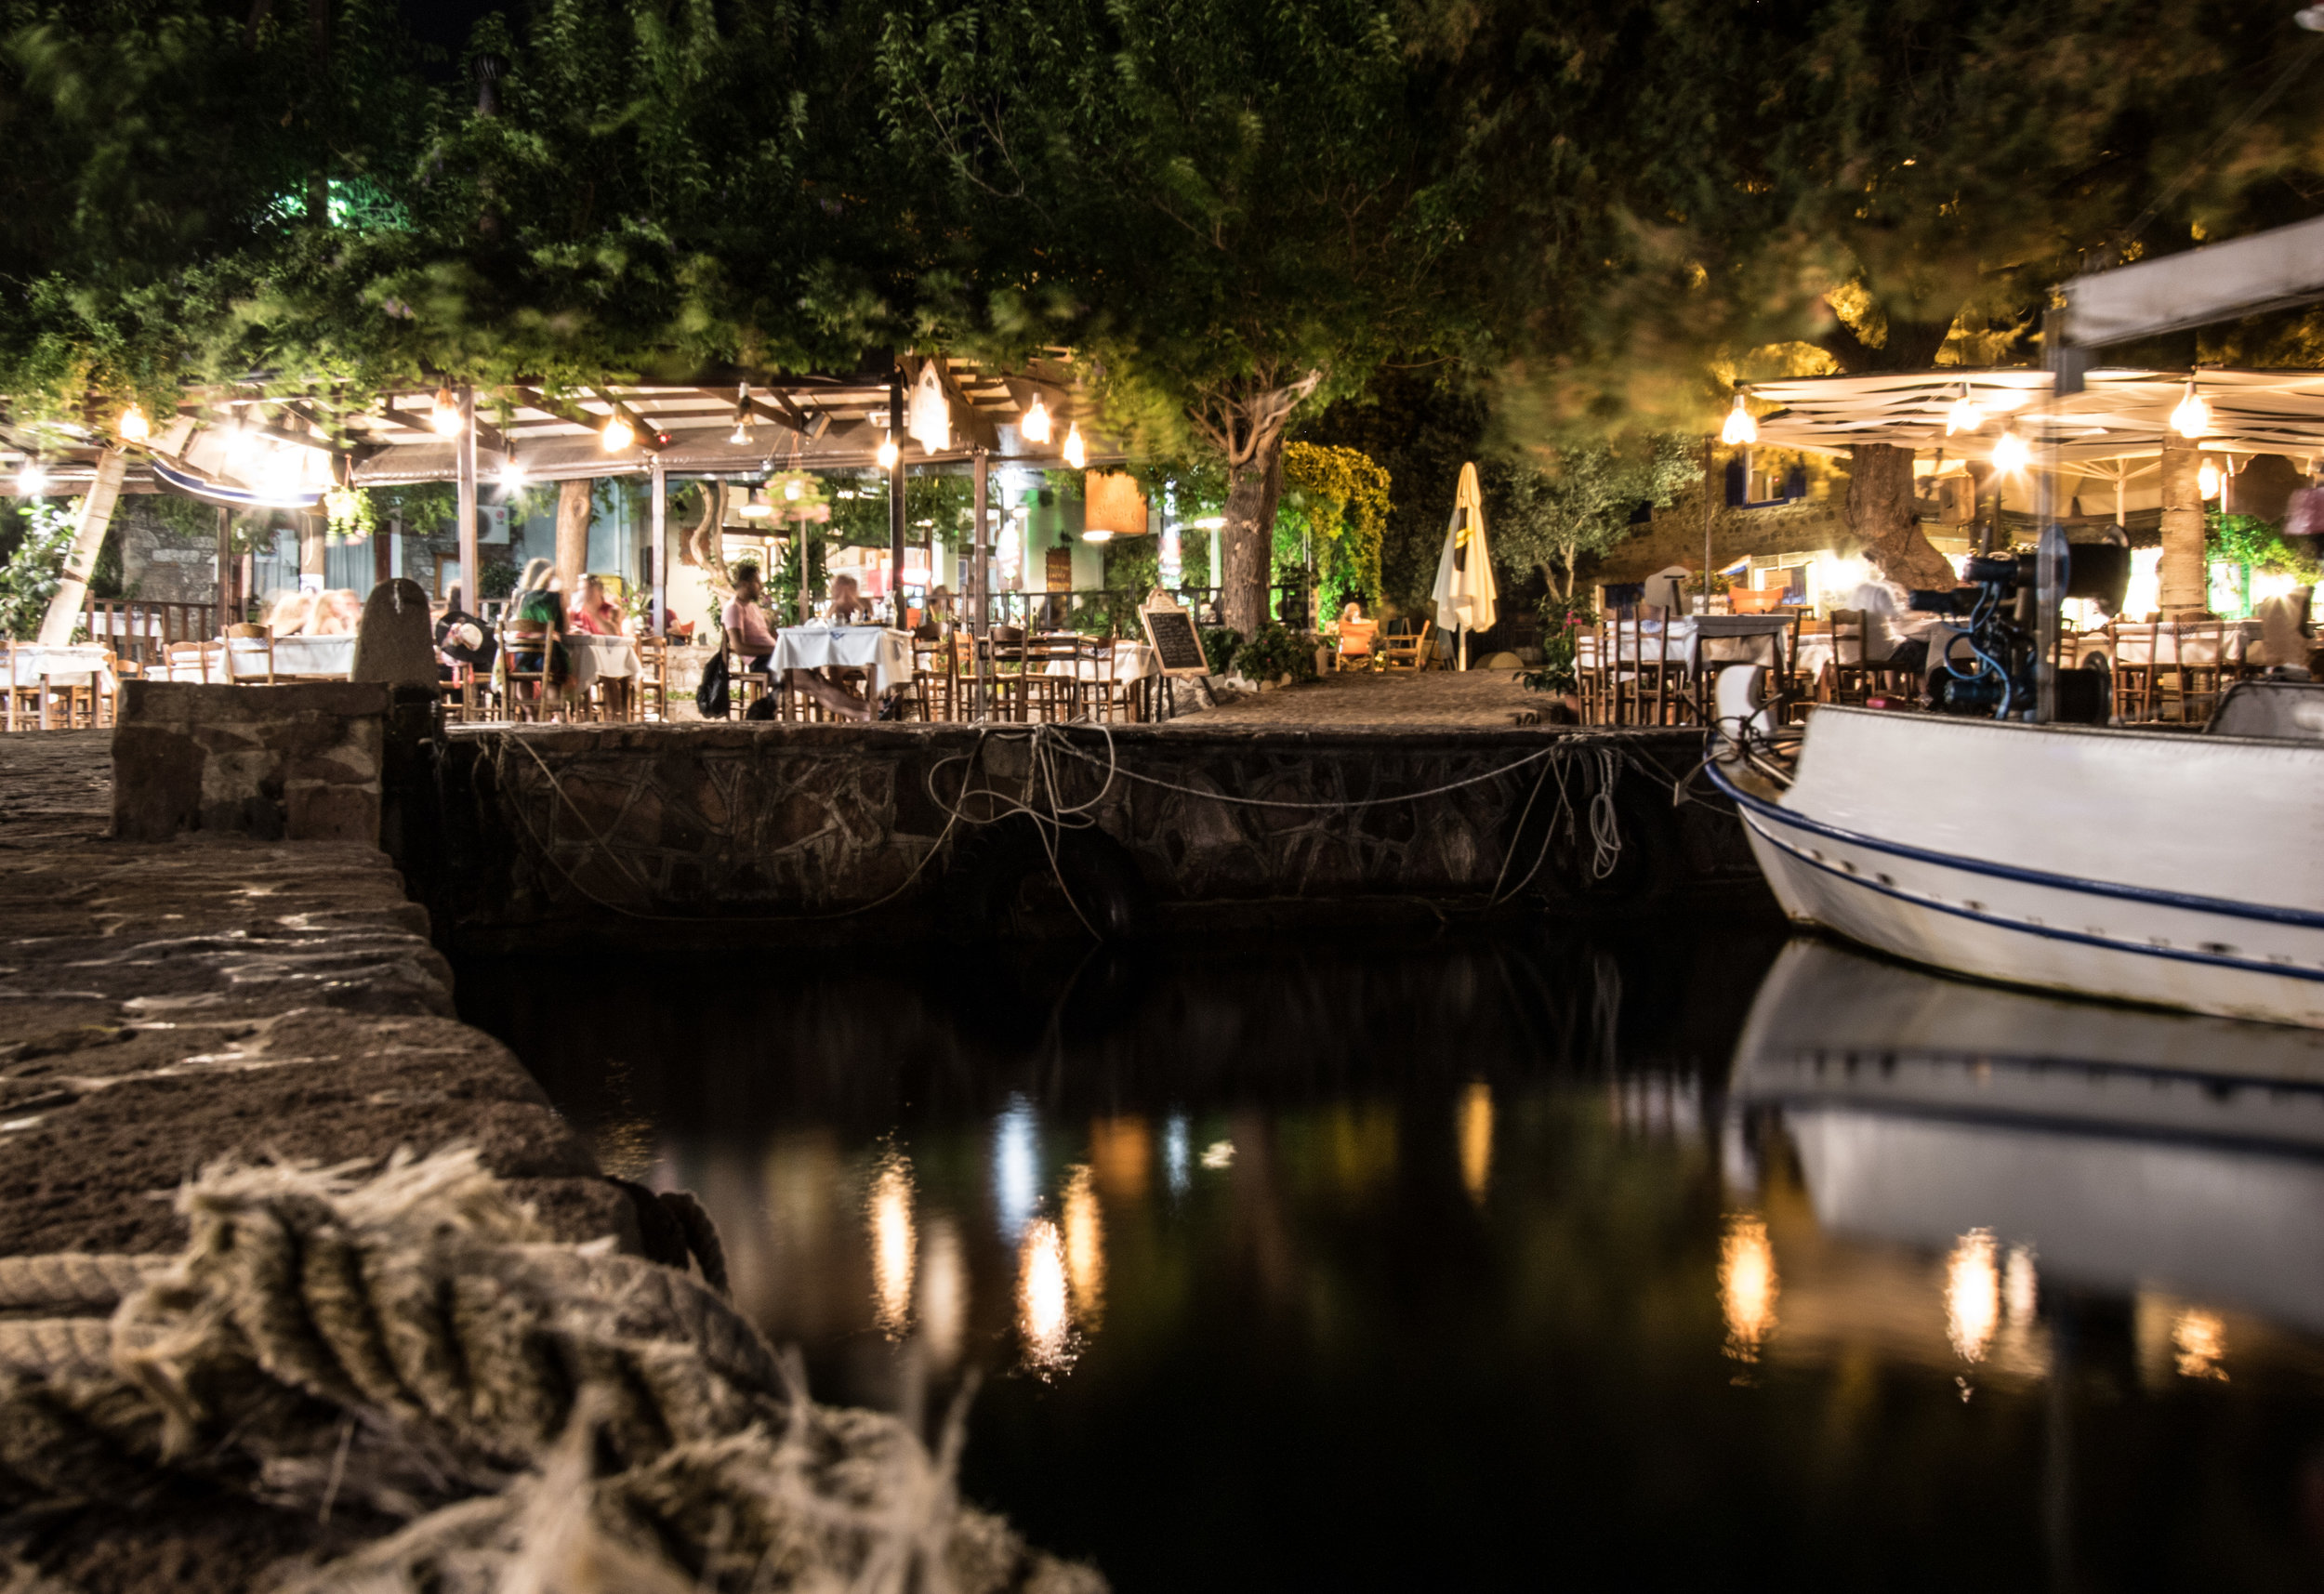 Berg-23-Jul-2018-10-43-30-Skala, Lesvos, Greece, Seaside, Village, Quay, Cafe, Night.jpg